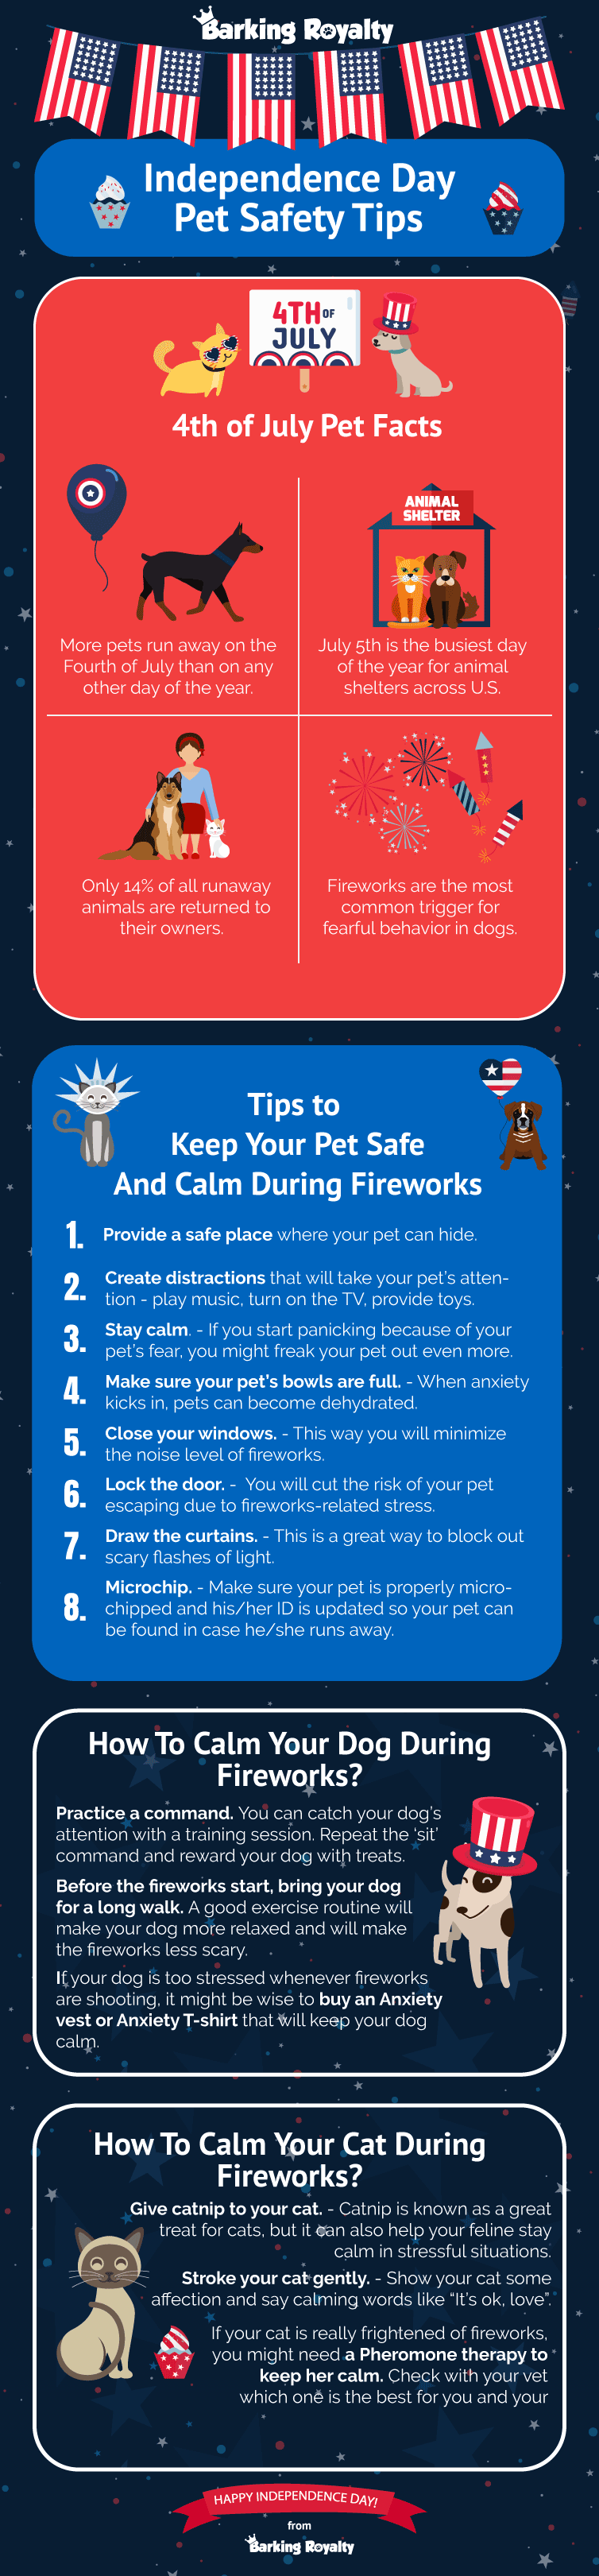 Pets aren't big fans of fireworks, we all know that. But